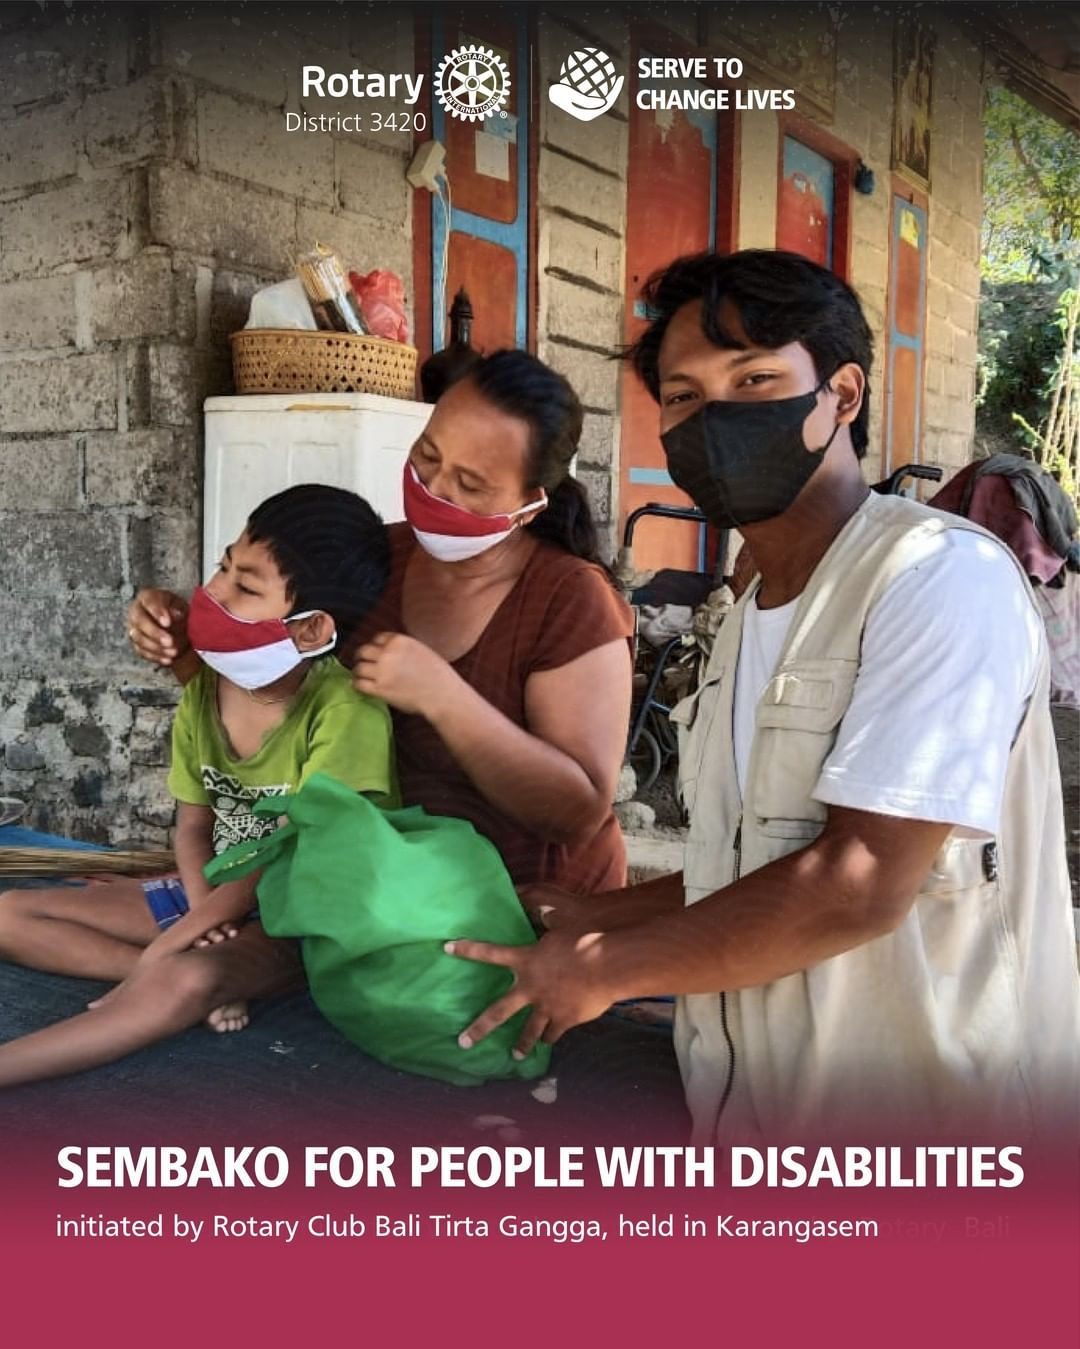 Sembako for People with Disabilities